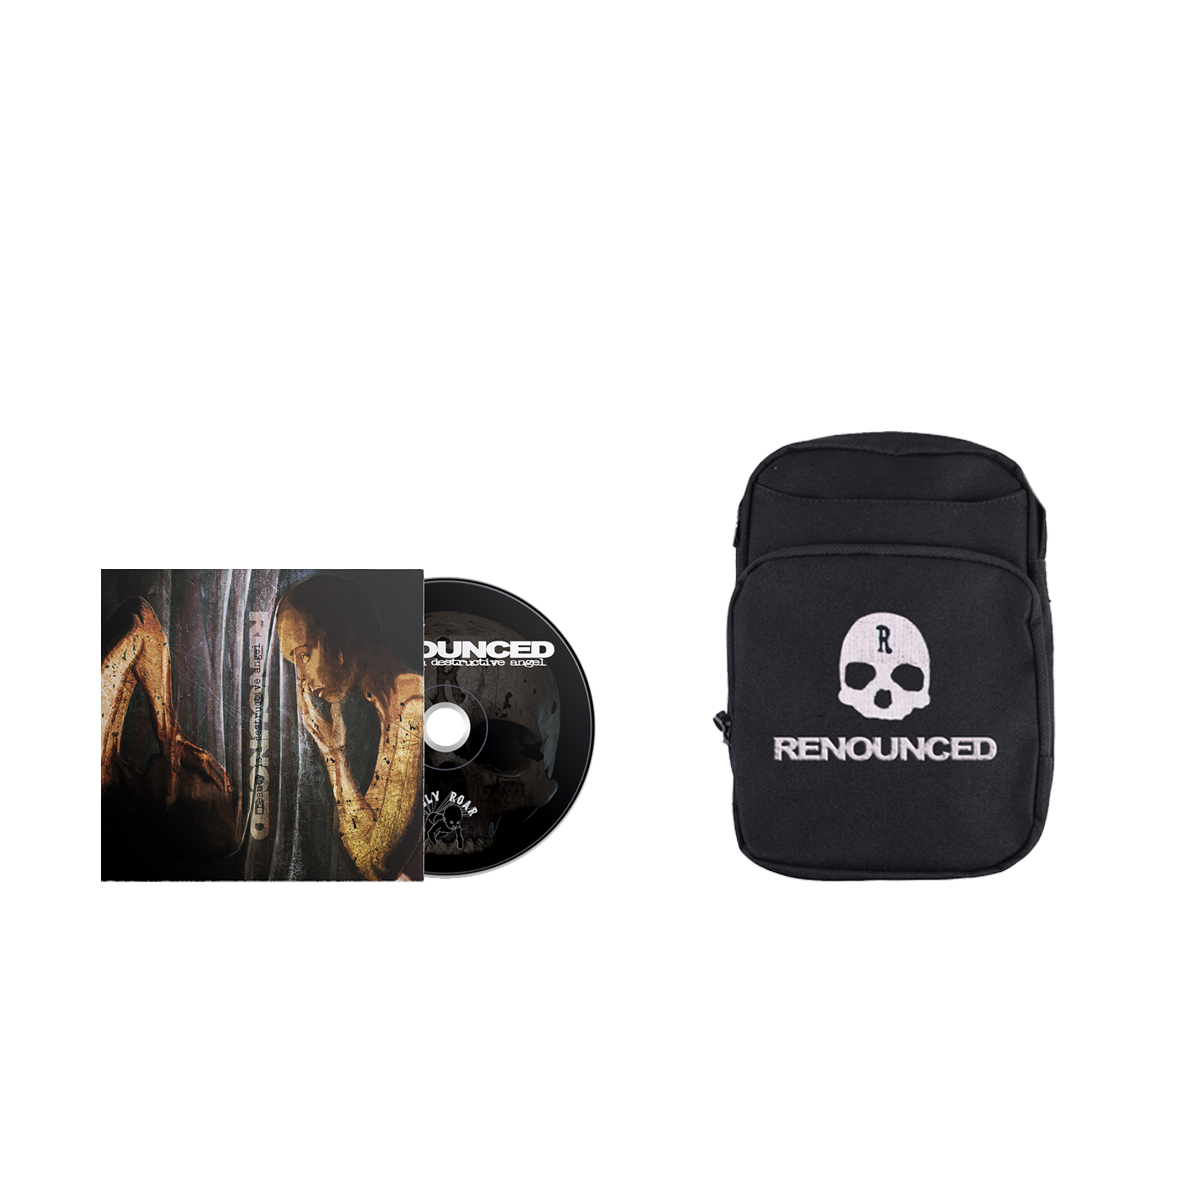 Renounced - Beauty Is A Destructive Angel CD + body bag PREORDER